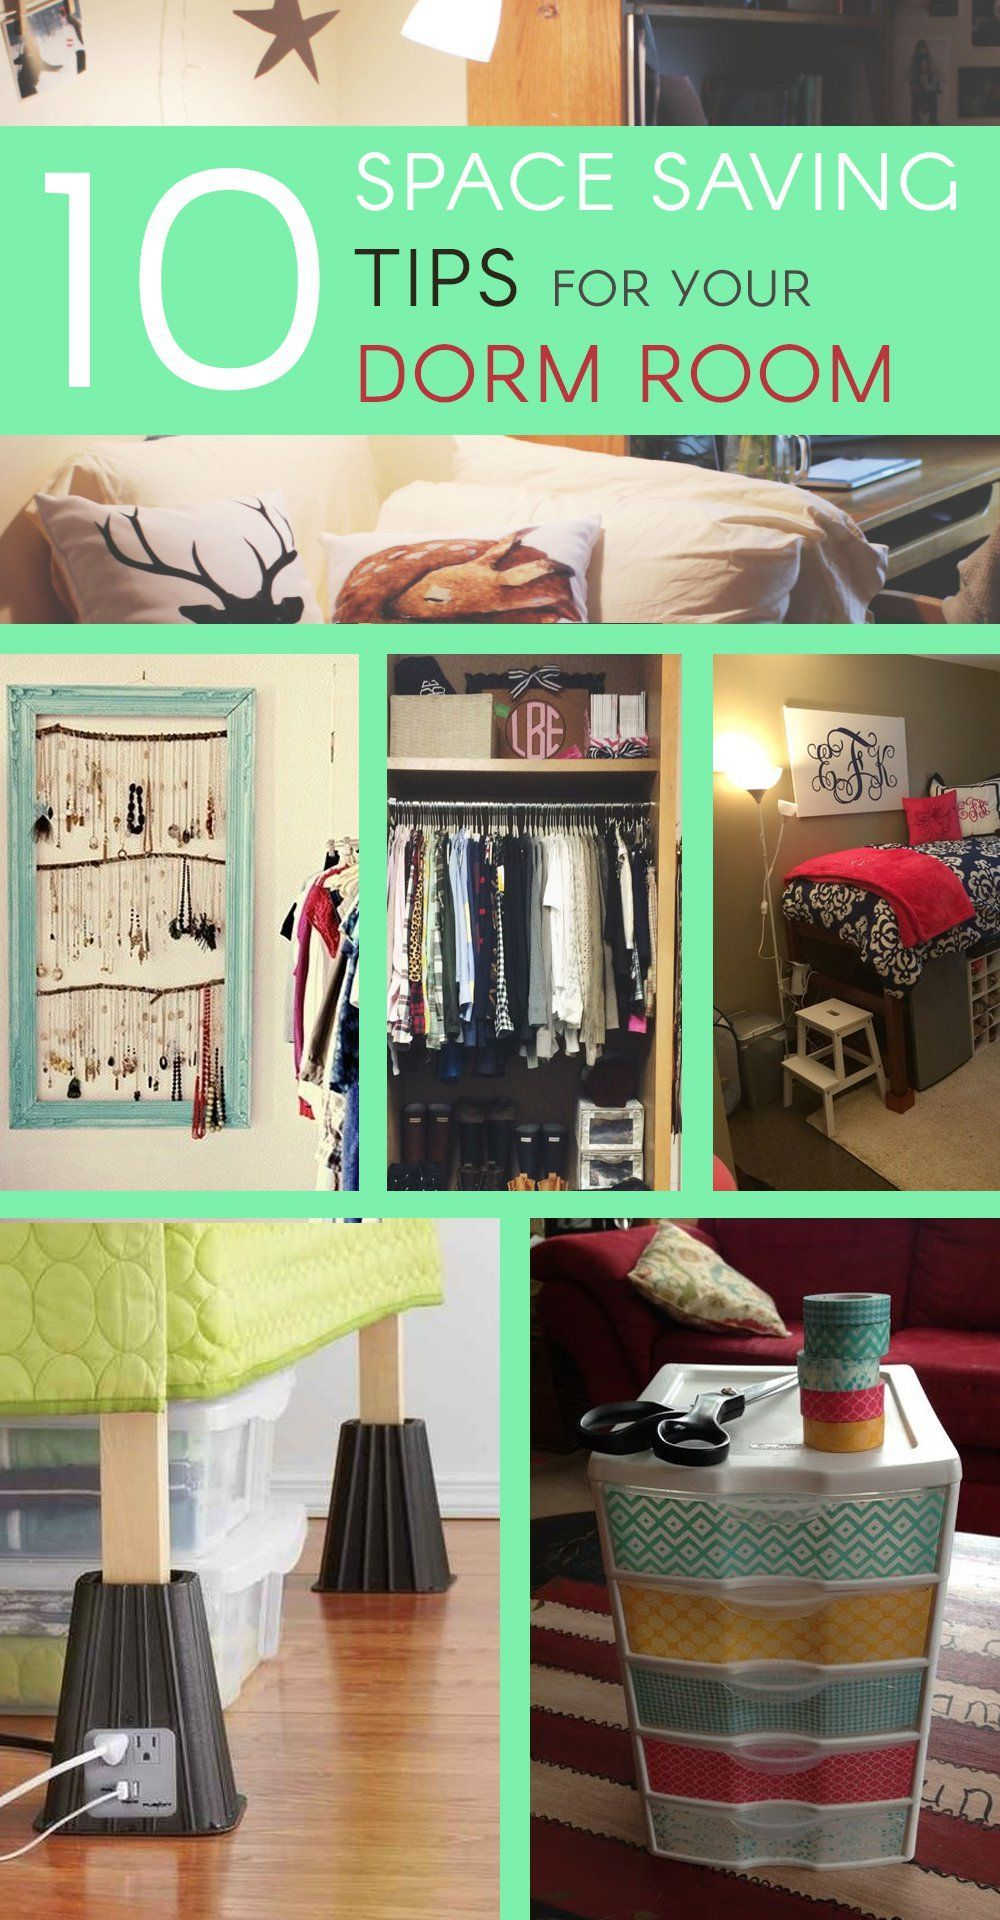 Dorm room essentials create  stylish space for lounging studying  sleeping find ideas products and decorating tips from cute decor also in rh pinterest